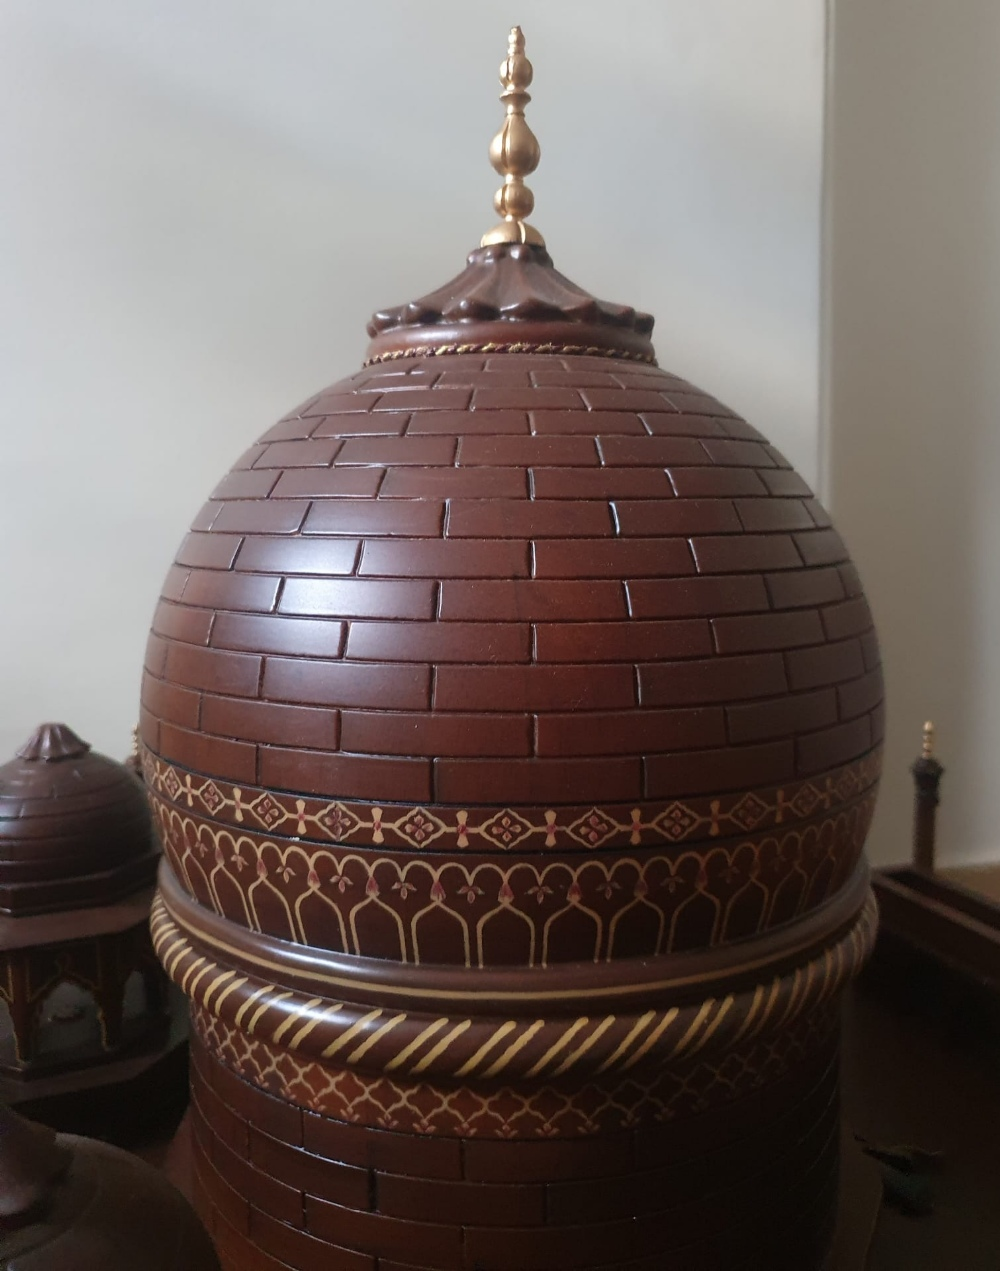 """A large wooden model of the Taj Mahal, Width 45"""", Height 32"""". Viewing by prior arrangement. - Image 6 of 8"""